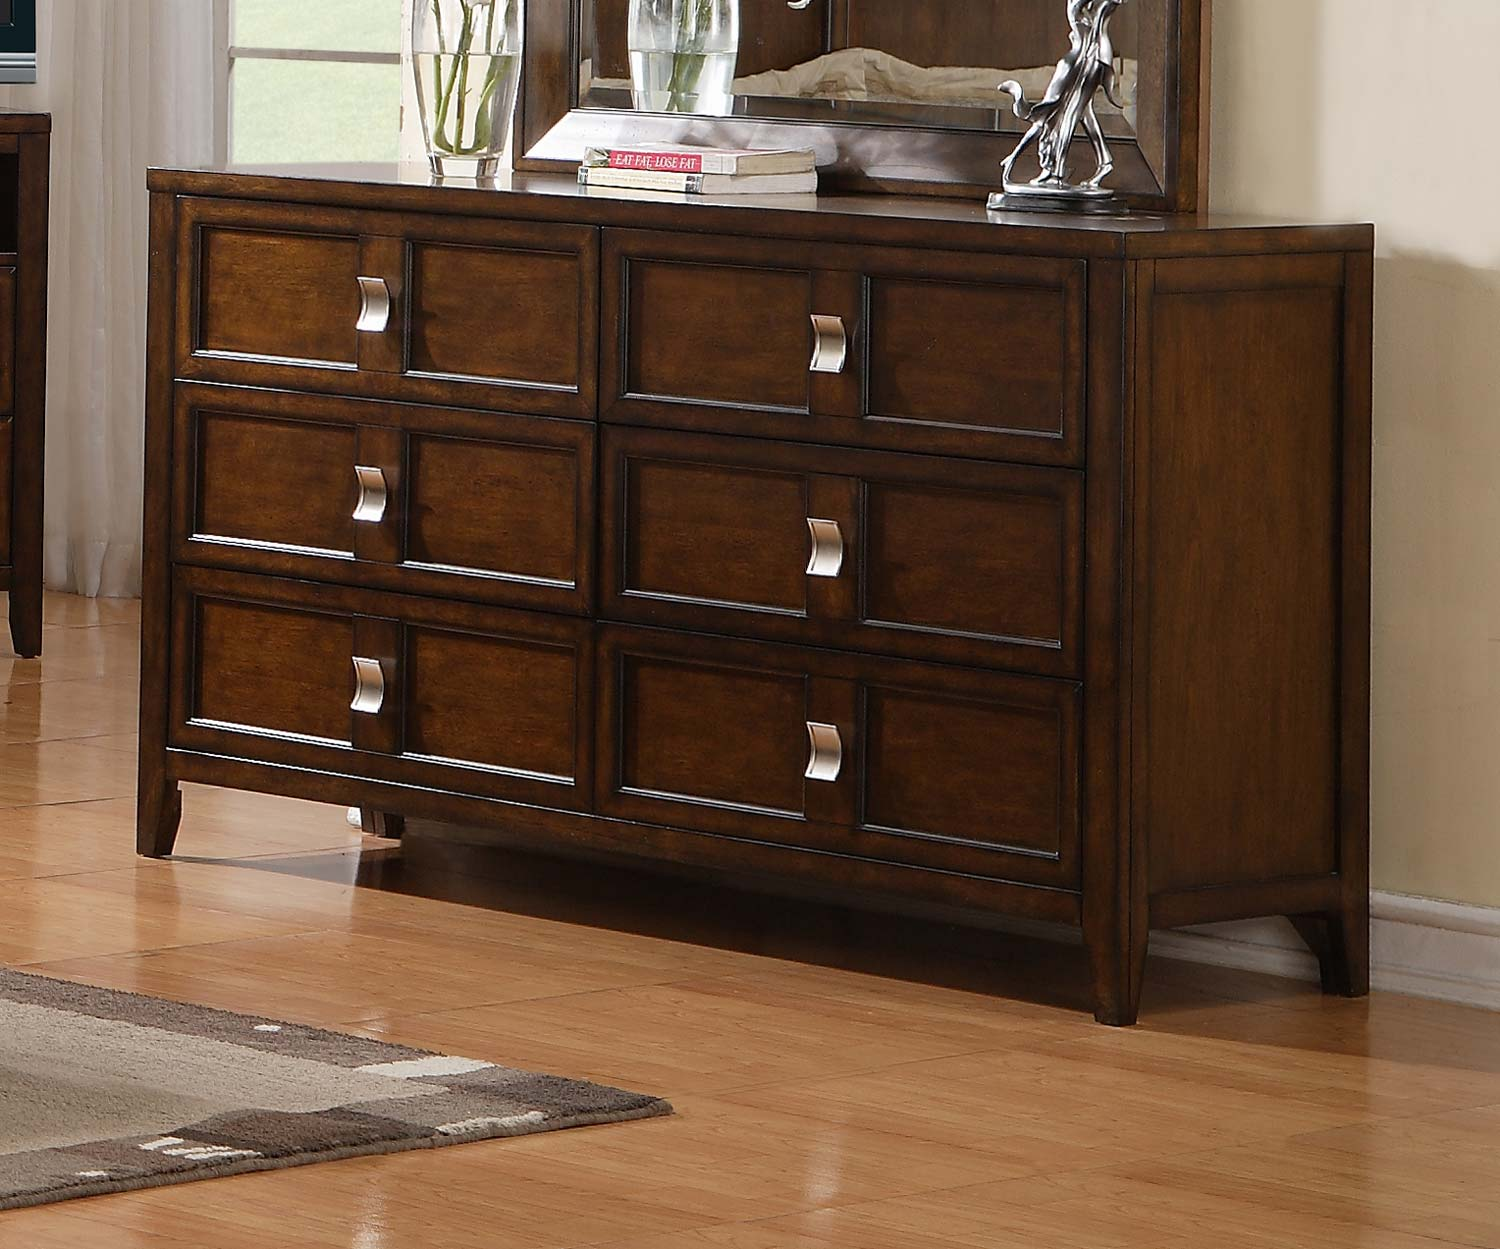 Pulaski Bayfield Drawer Dresser